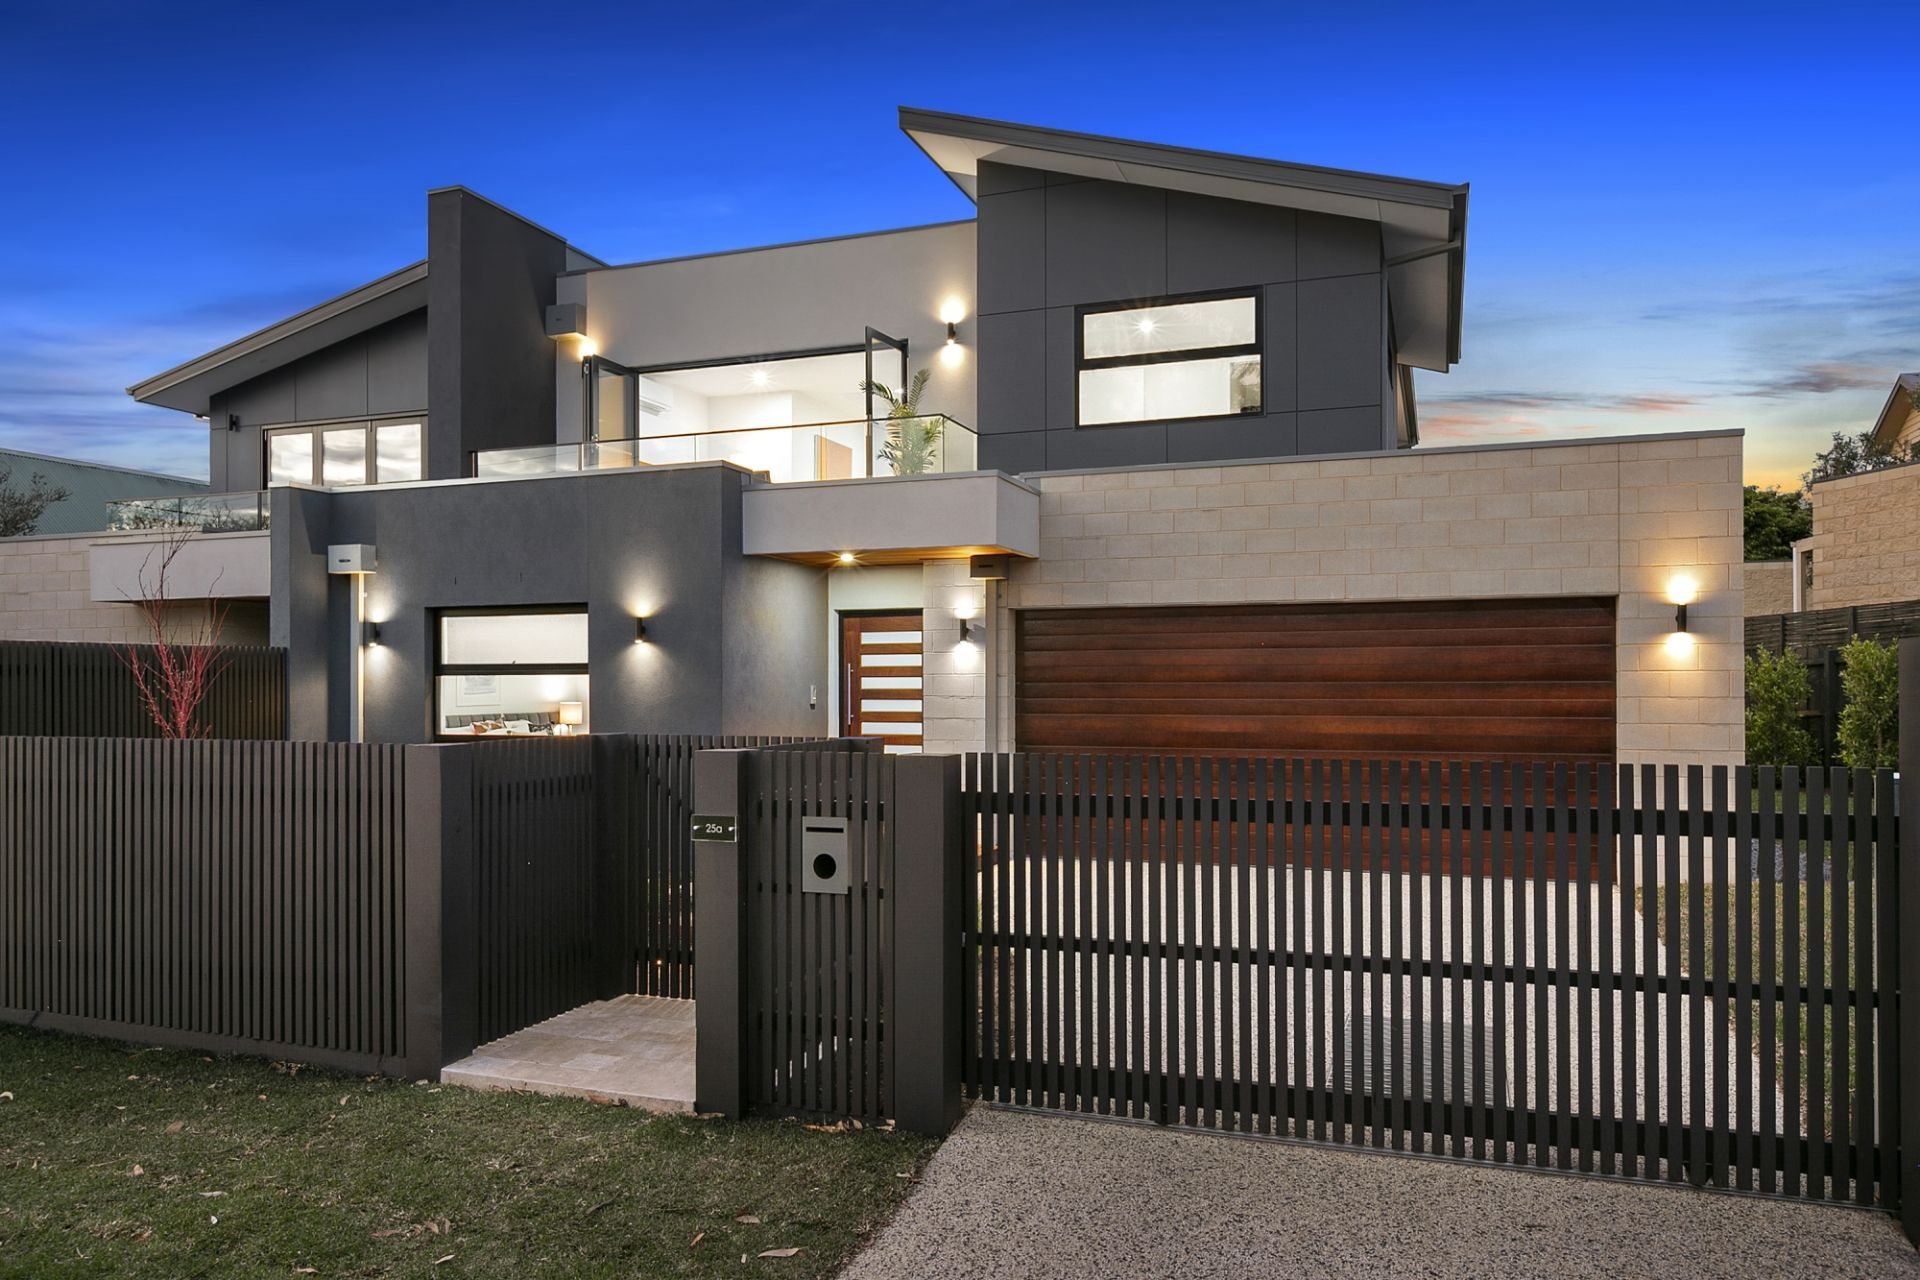 25A Gleneagles Avenue, MORNINGTON, VIC, 3931 - Image